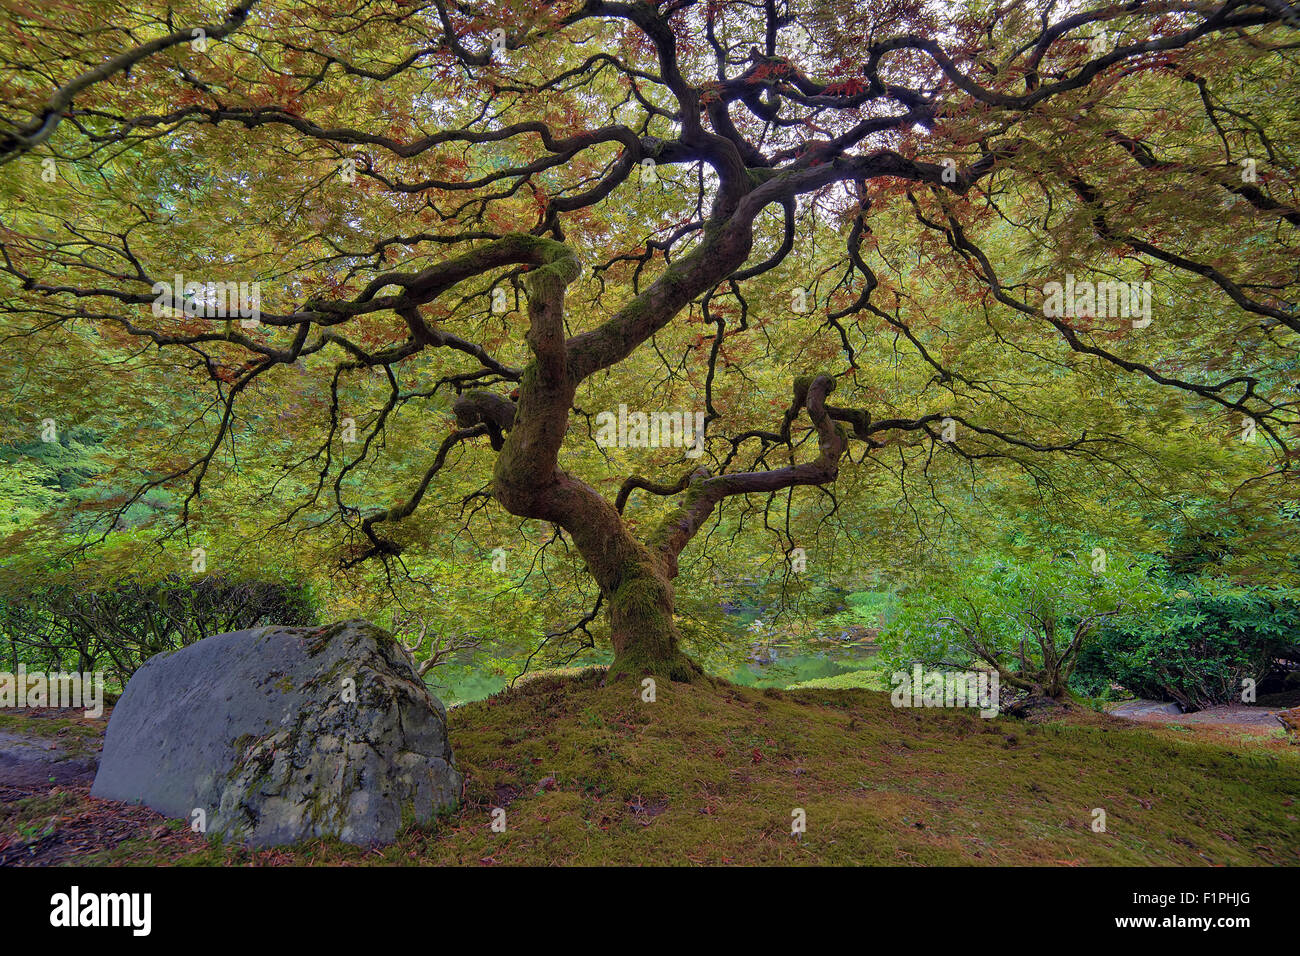 Old Japanese Lace Leaf Maple Tree at Japanese Garden Stock Photo